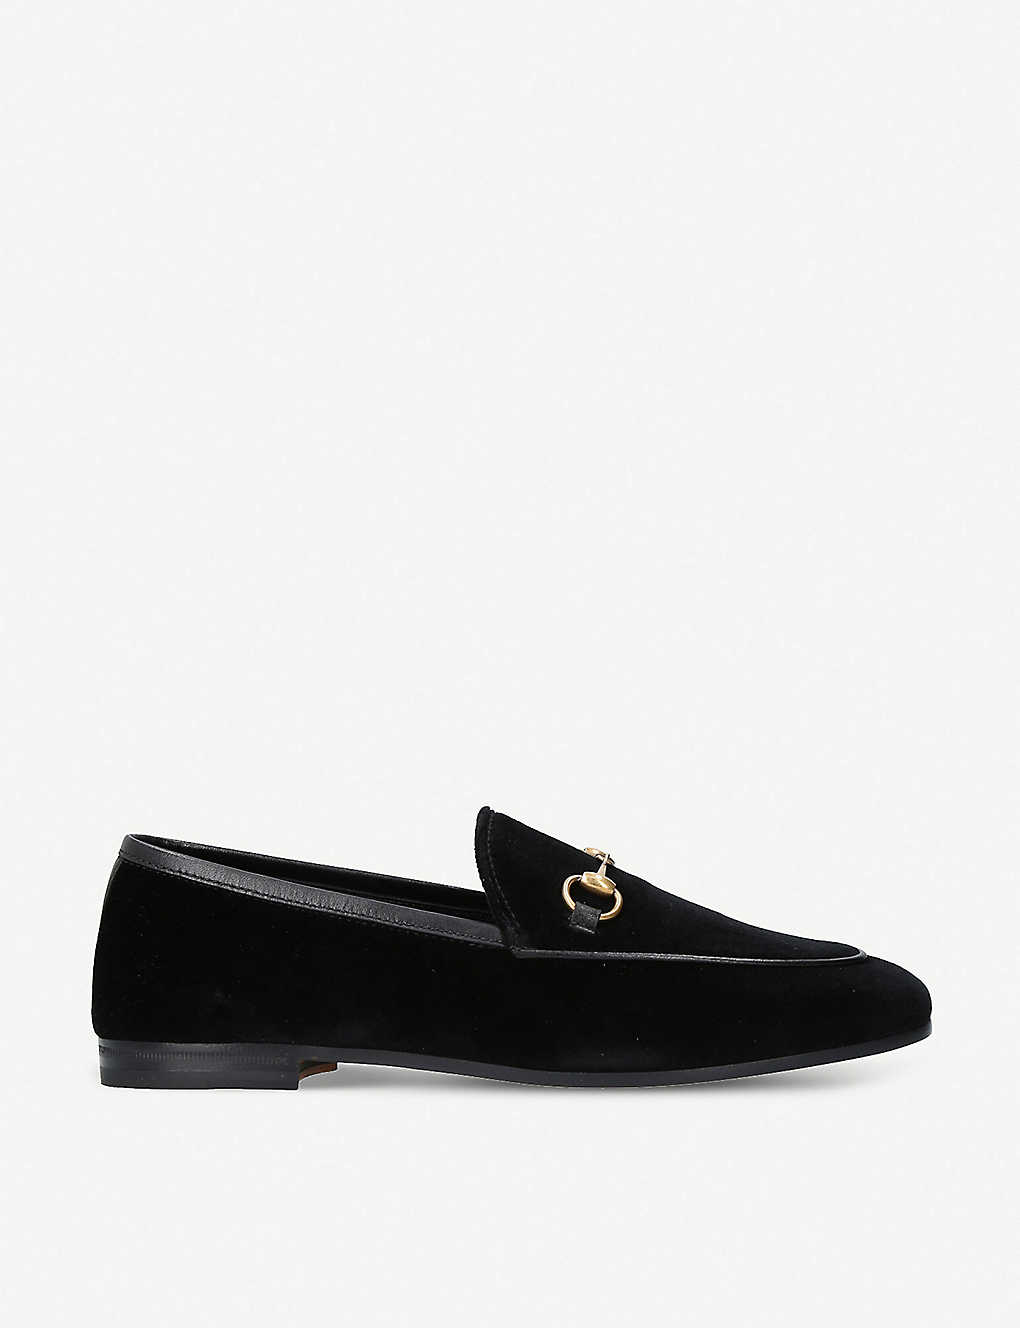 1b34e2cd2c Jordaan velvet loafers